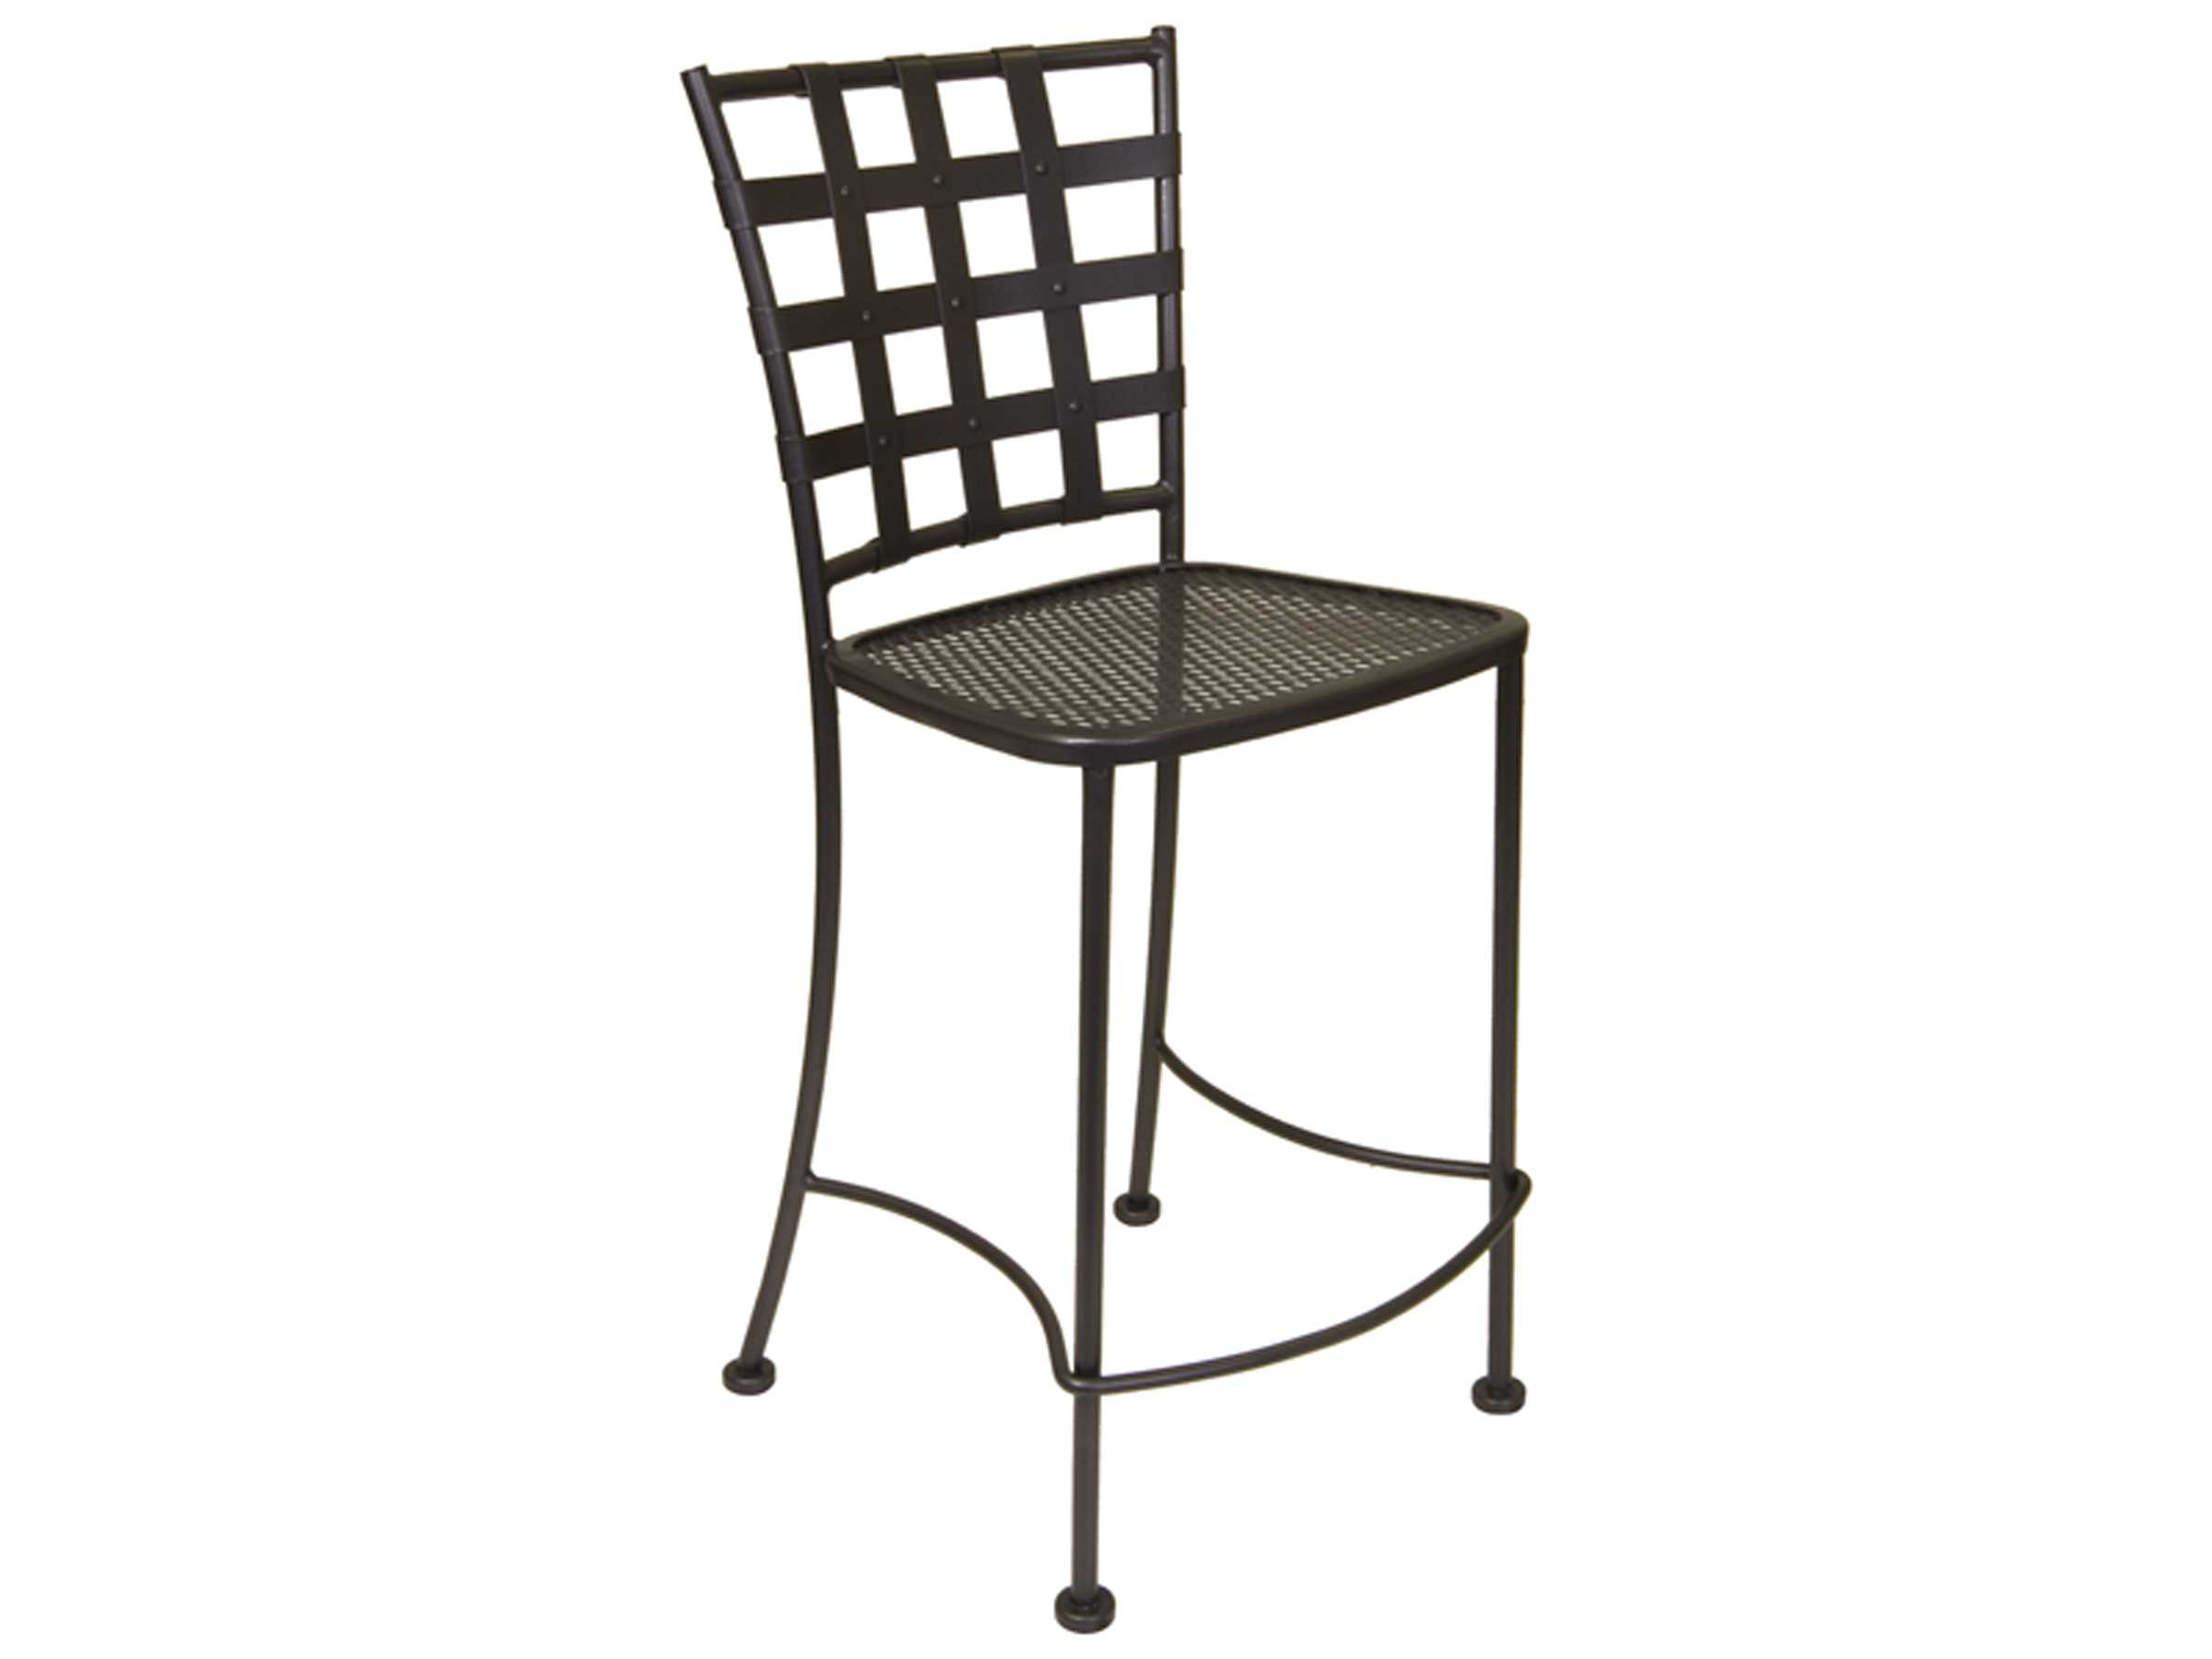 OW Lee Casa Bar Stool Replacement Cushions OW716BSCH : OW716BSzm from www.luxedecor.com size 2396 x 1797 jpeg 67kB